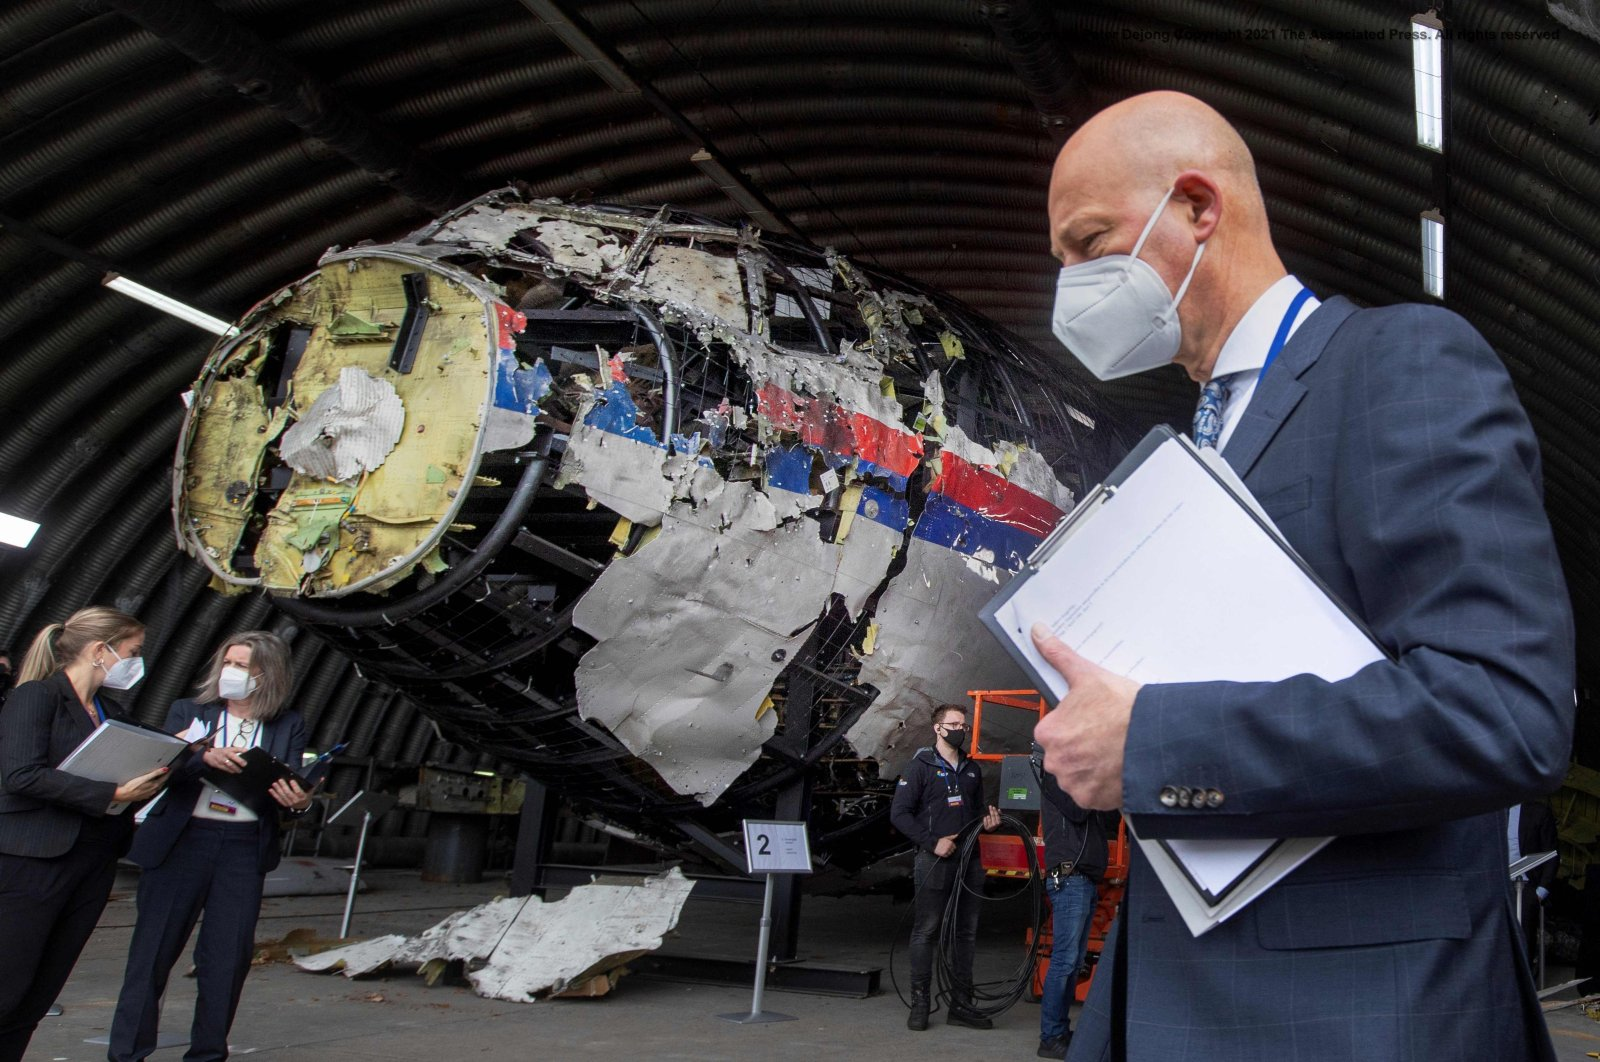 Judge Hendrik Steenhuis (C), other trial judges and lawyers view the reconstructed wreckage of Malaysia Airlines flight MH17, at the Gilze-Rijen military air base, near Breda, Netherlands, May 26, 2021. (AFP Photo)